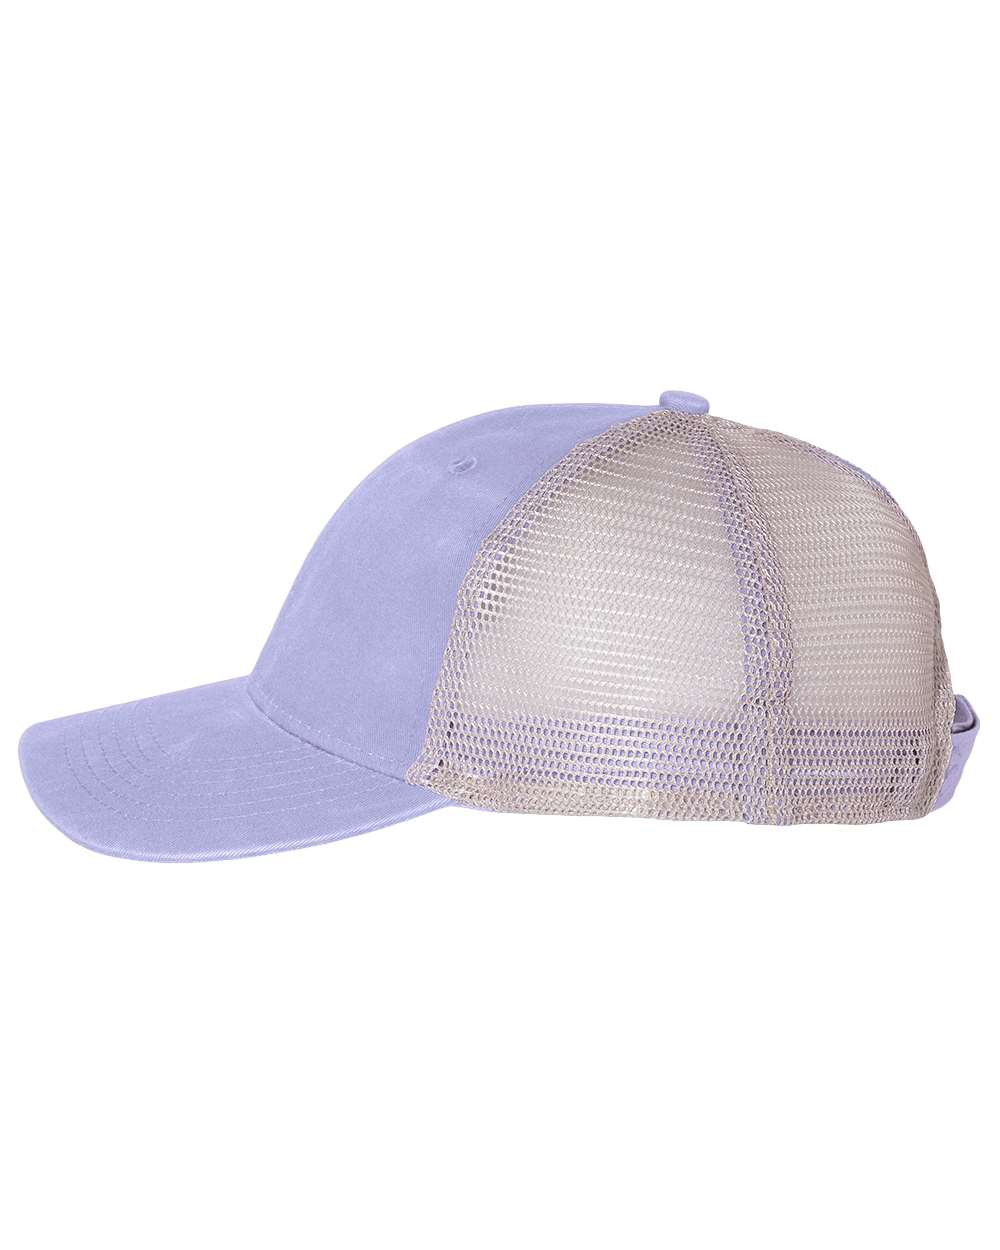 Outdoor Cap PNY100M - Ponytail Mesh-Back Cap